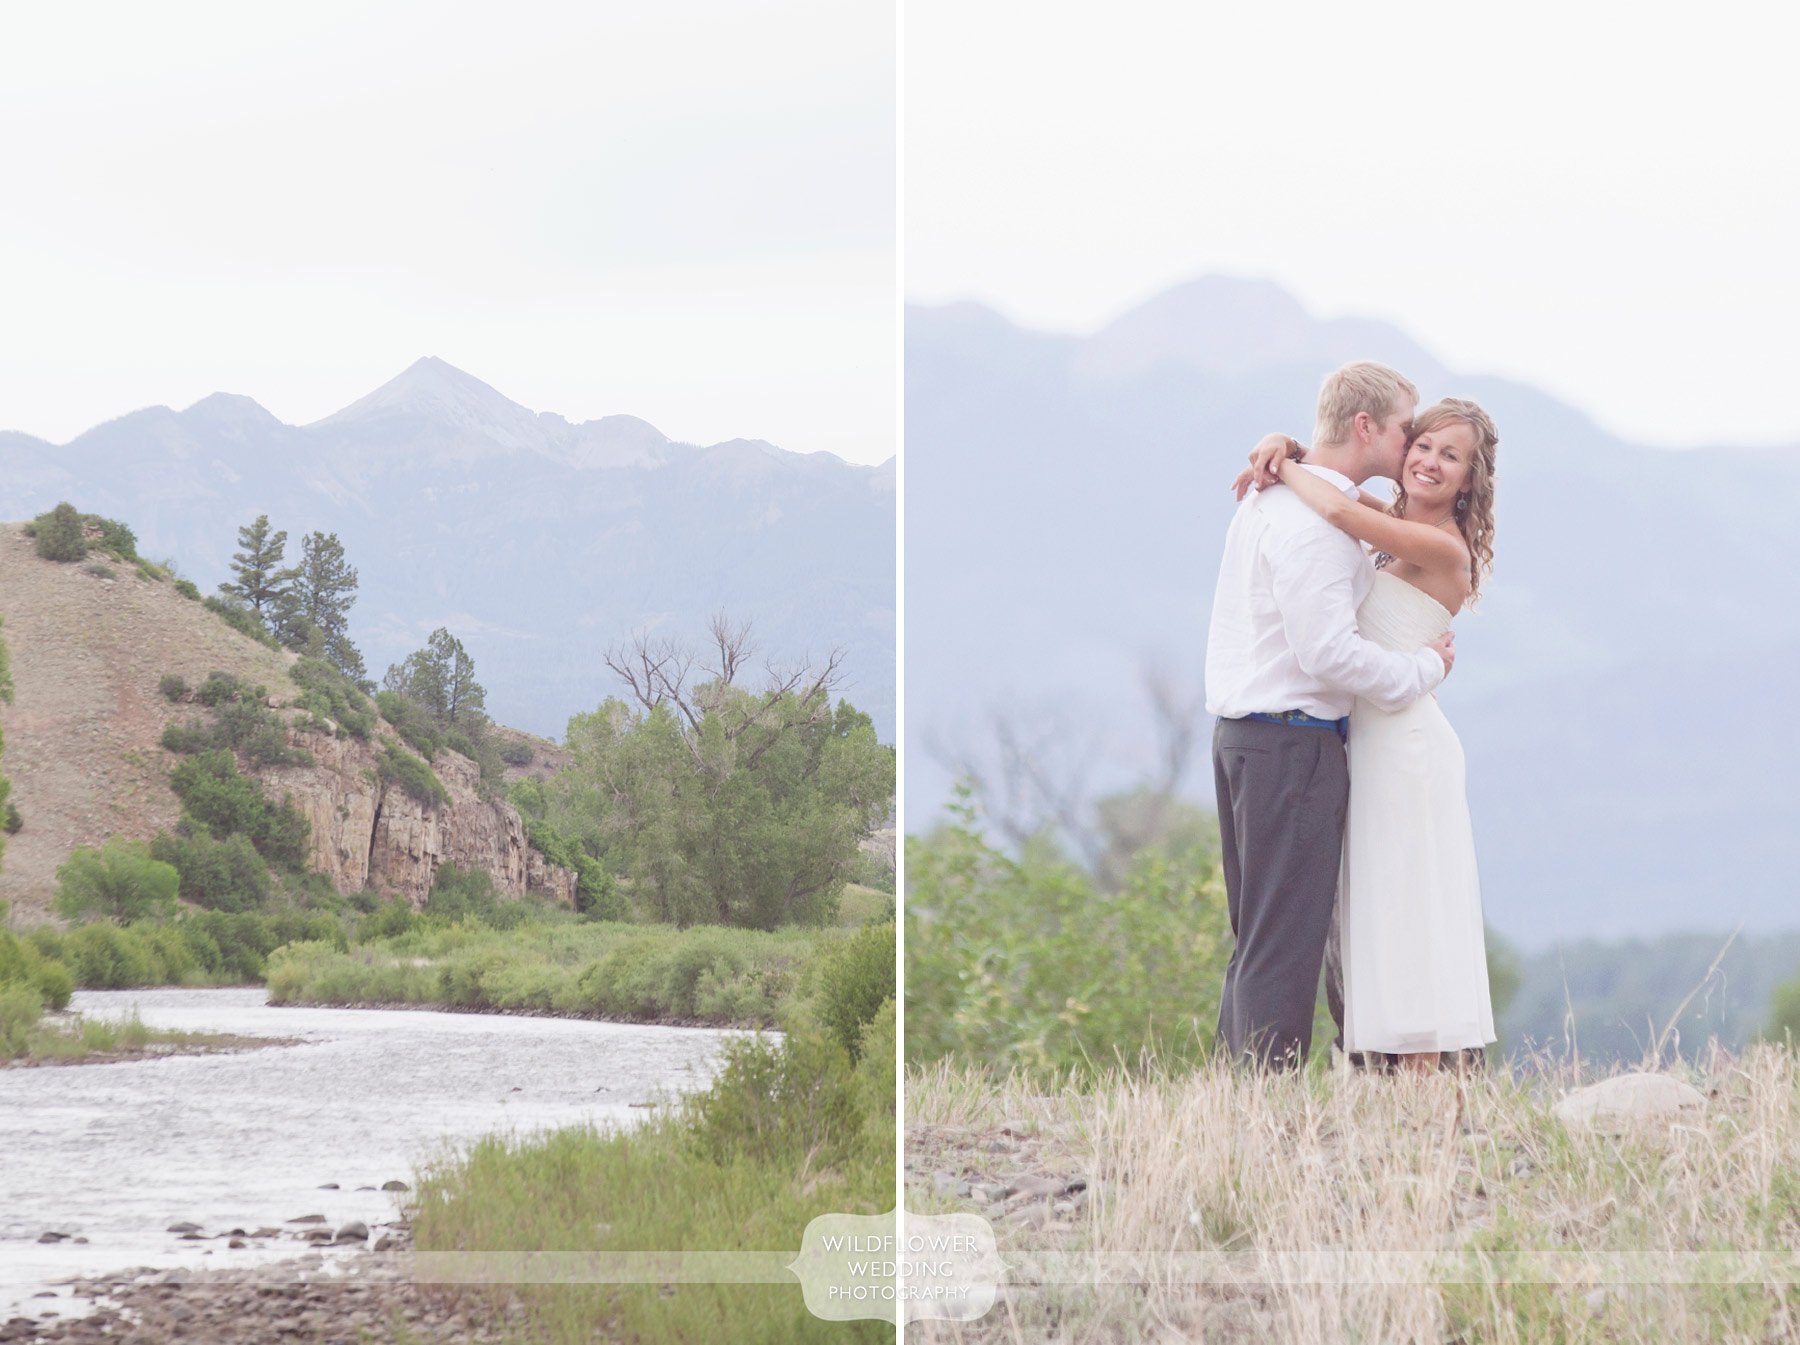 natural-wedding-photography-river-15-copy